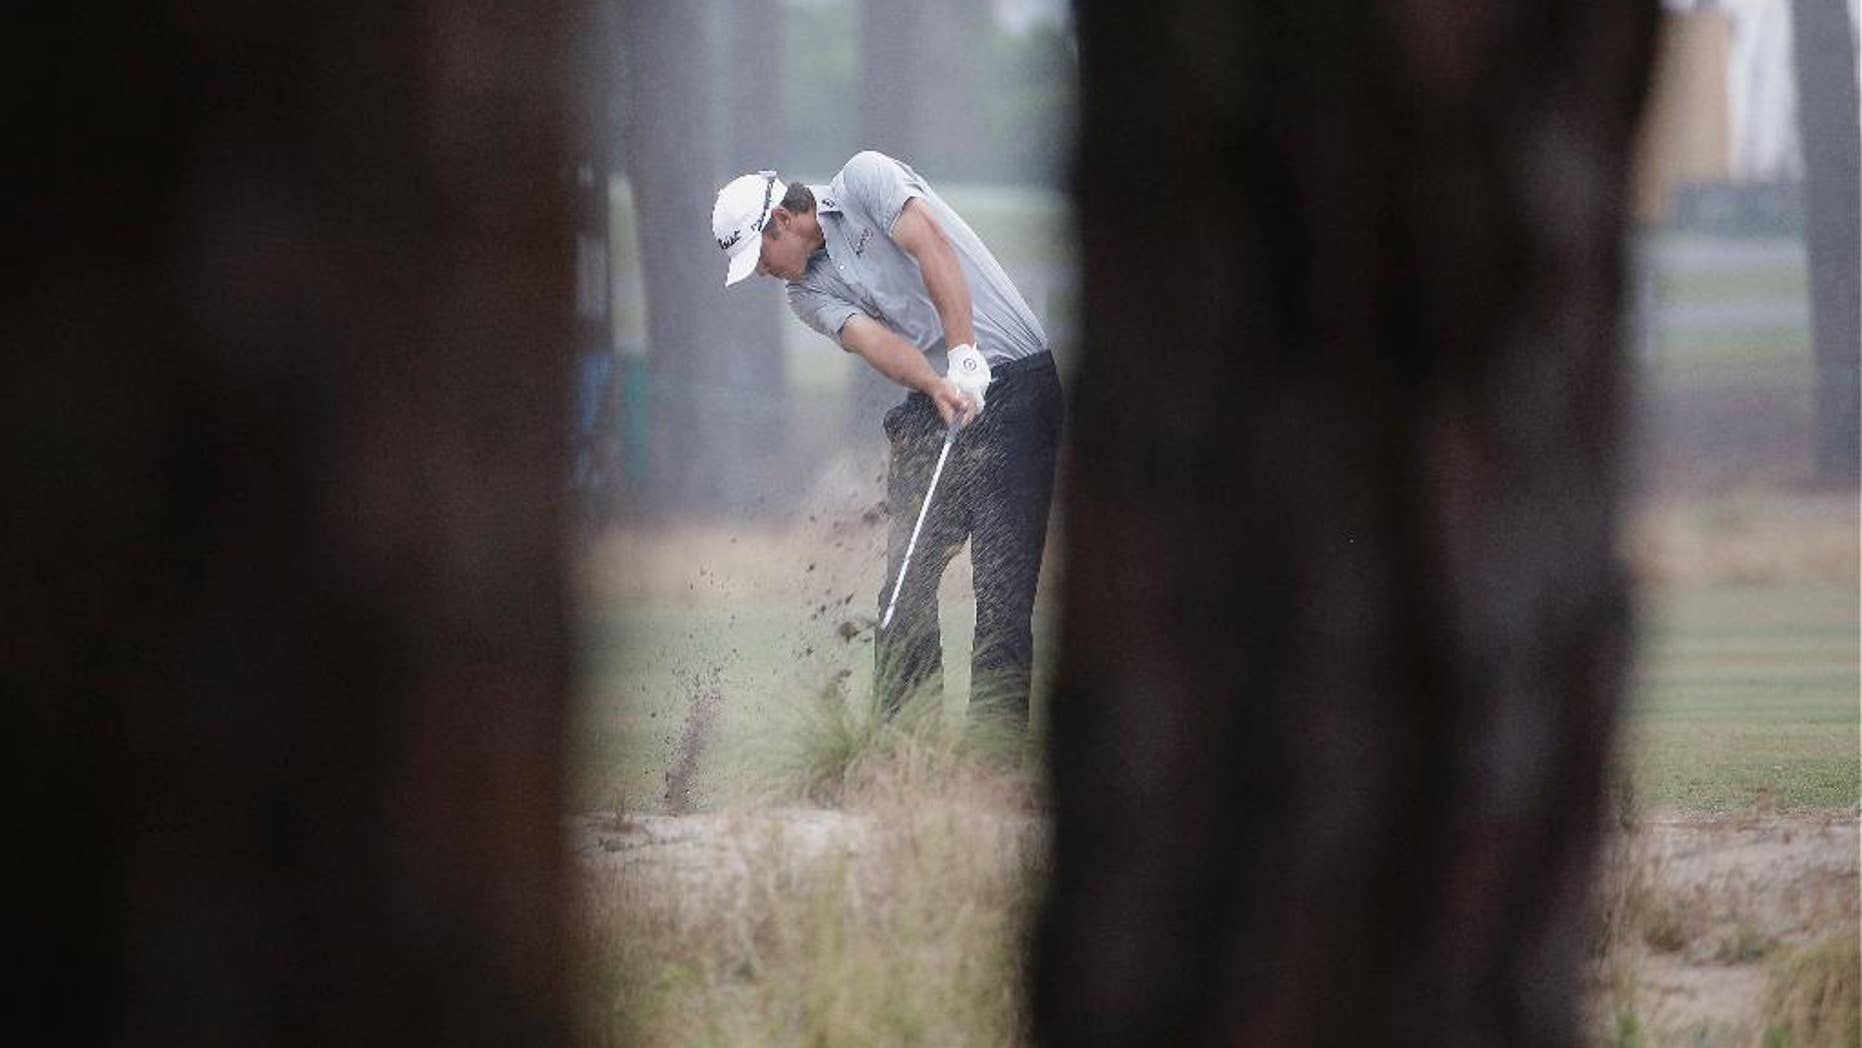 Brooks Koepka hits from the natural area on the 12th hole during the second round of the U.S. Open golf tournament in Pinehurst, N.C., Friday, June 13, 2014. (AP Photo/David Goldman)